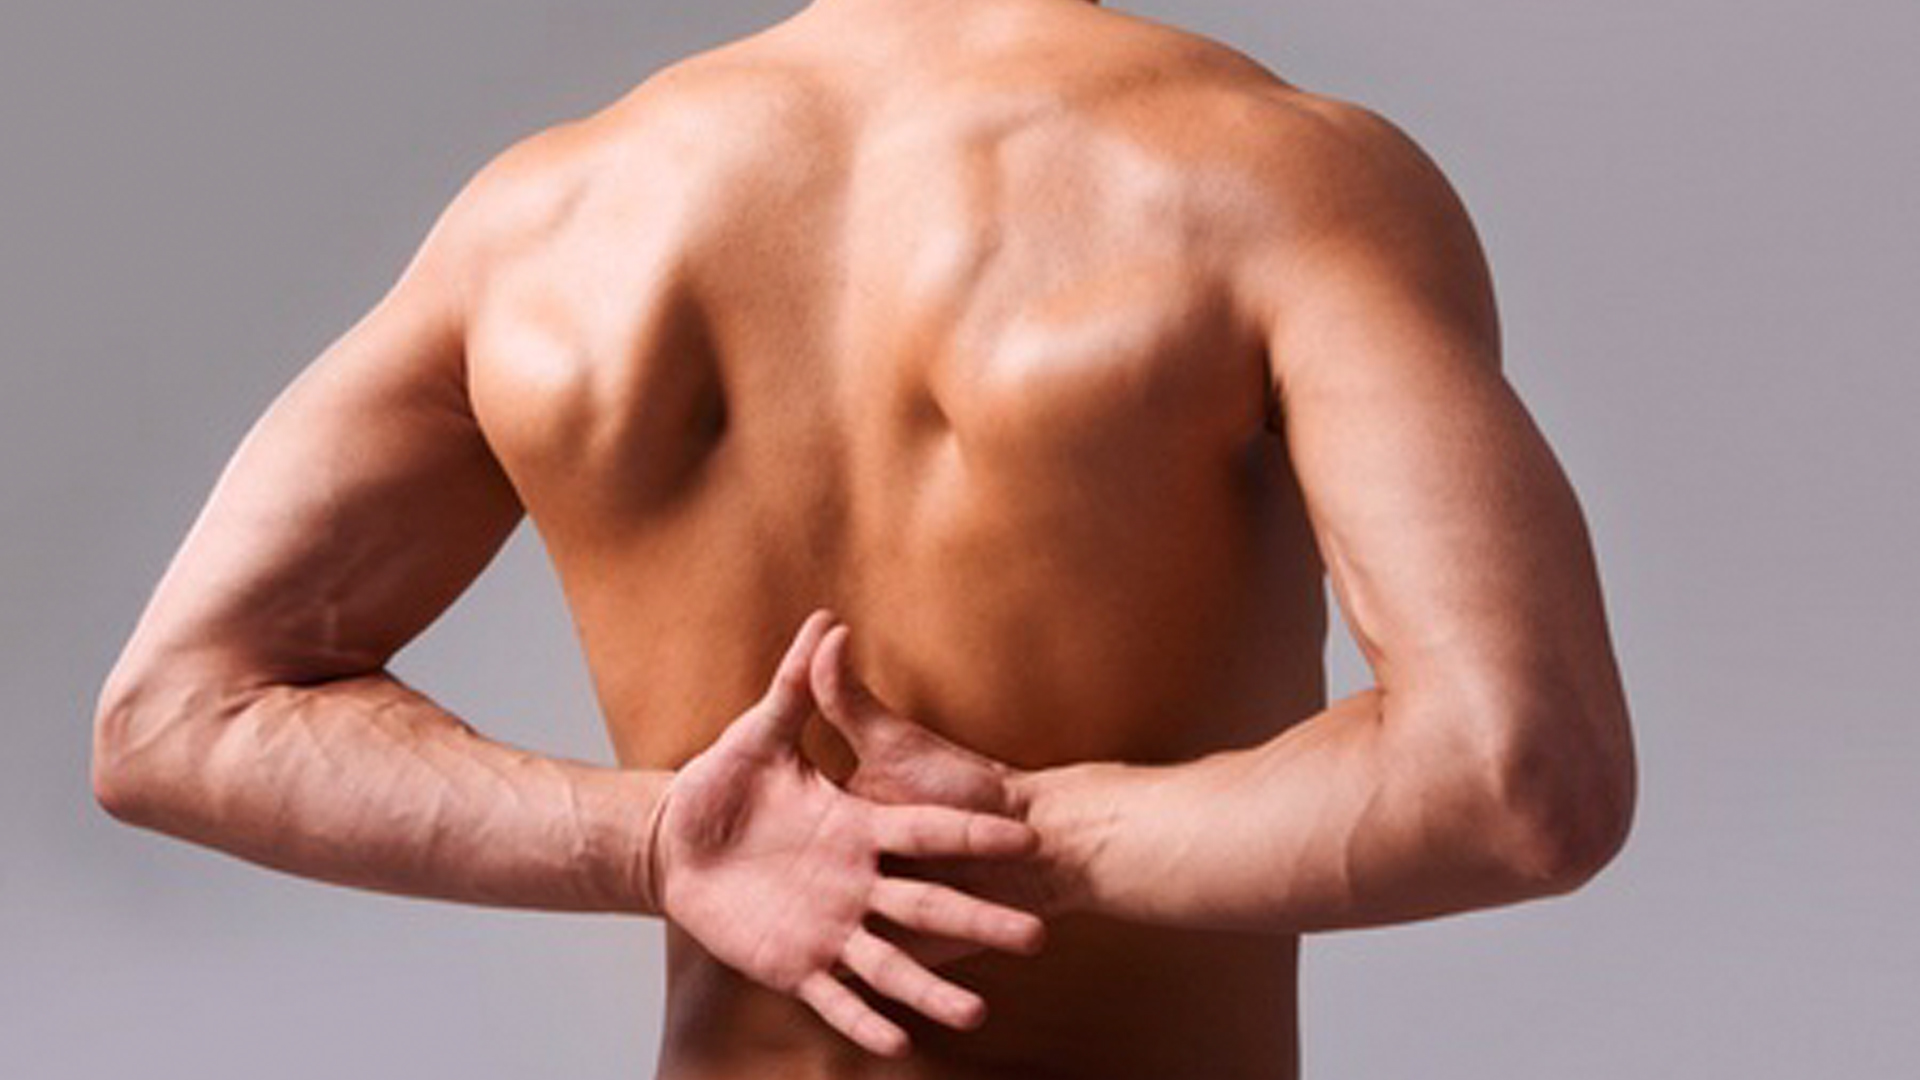 Is Cracking Your Back Healthy?